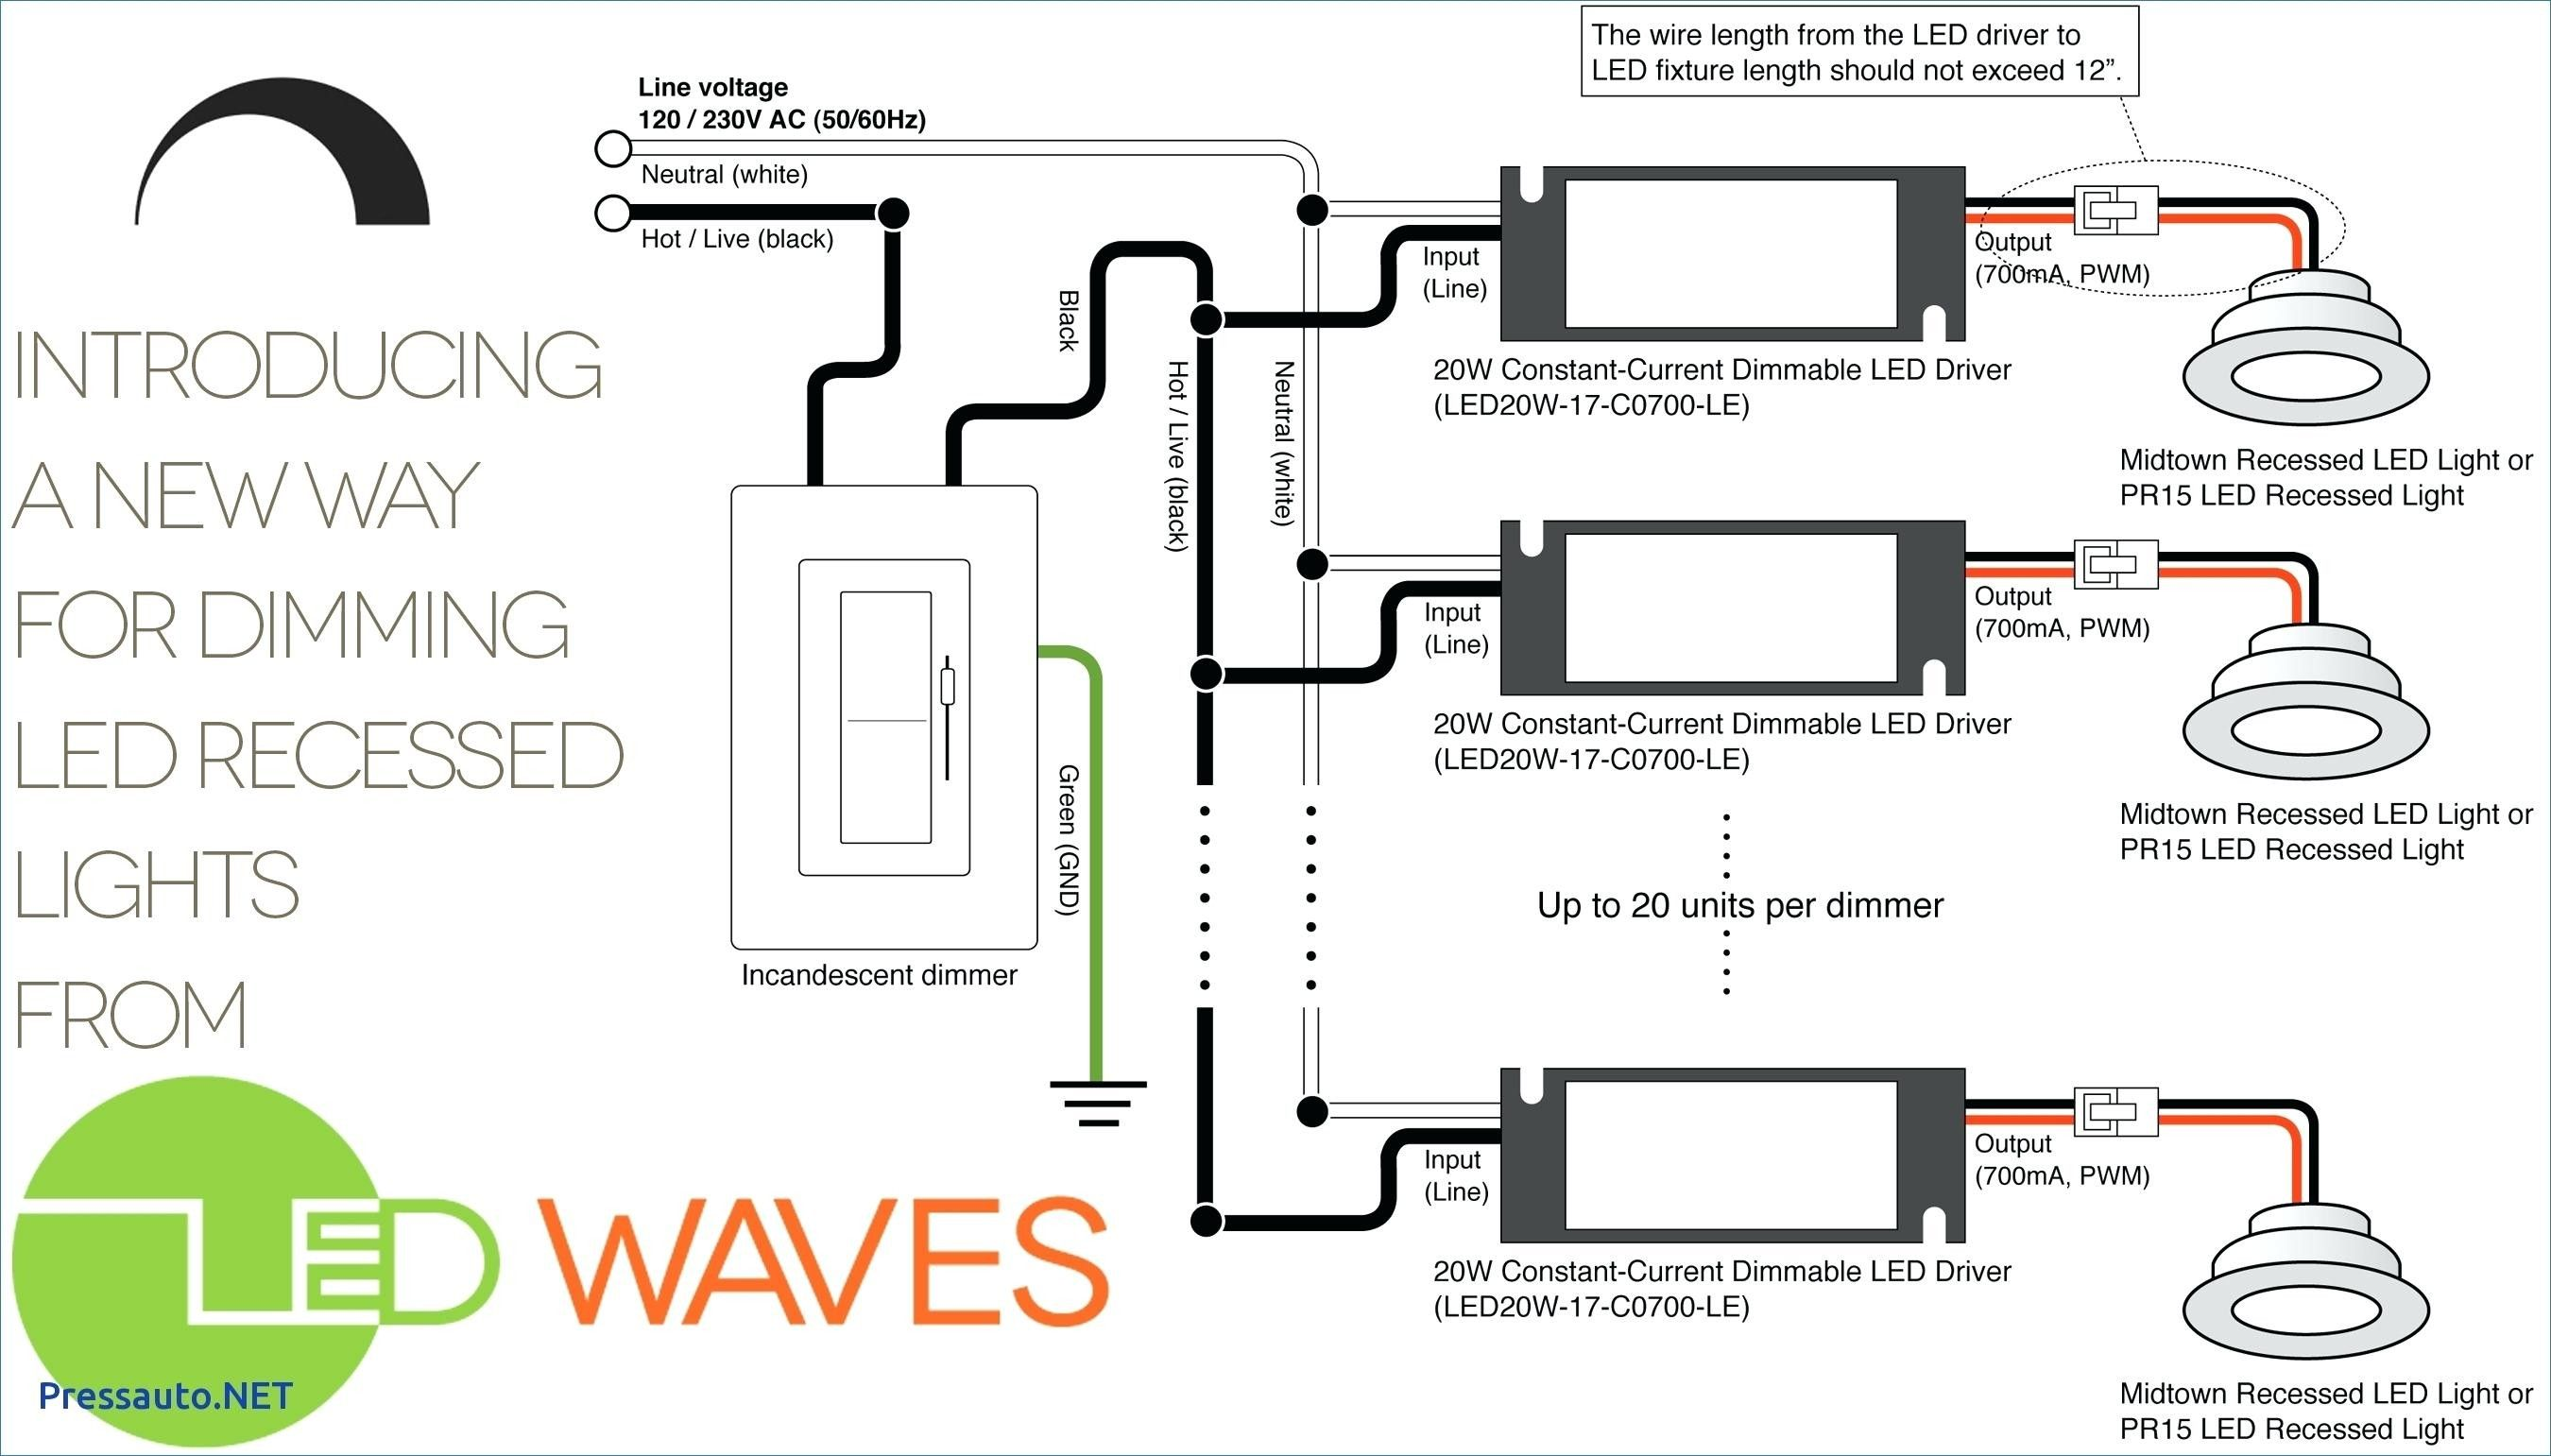 Unique Wiring Diagram for Can Lights #diagrams #digramssample  #diagramimages #wiringdiagramsample #wiringdiagr… | Recessed can lights,  Recessed lighting, Can lightsPinterest